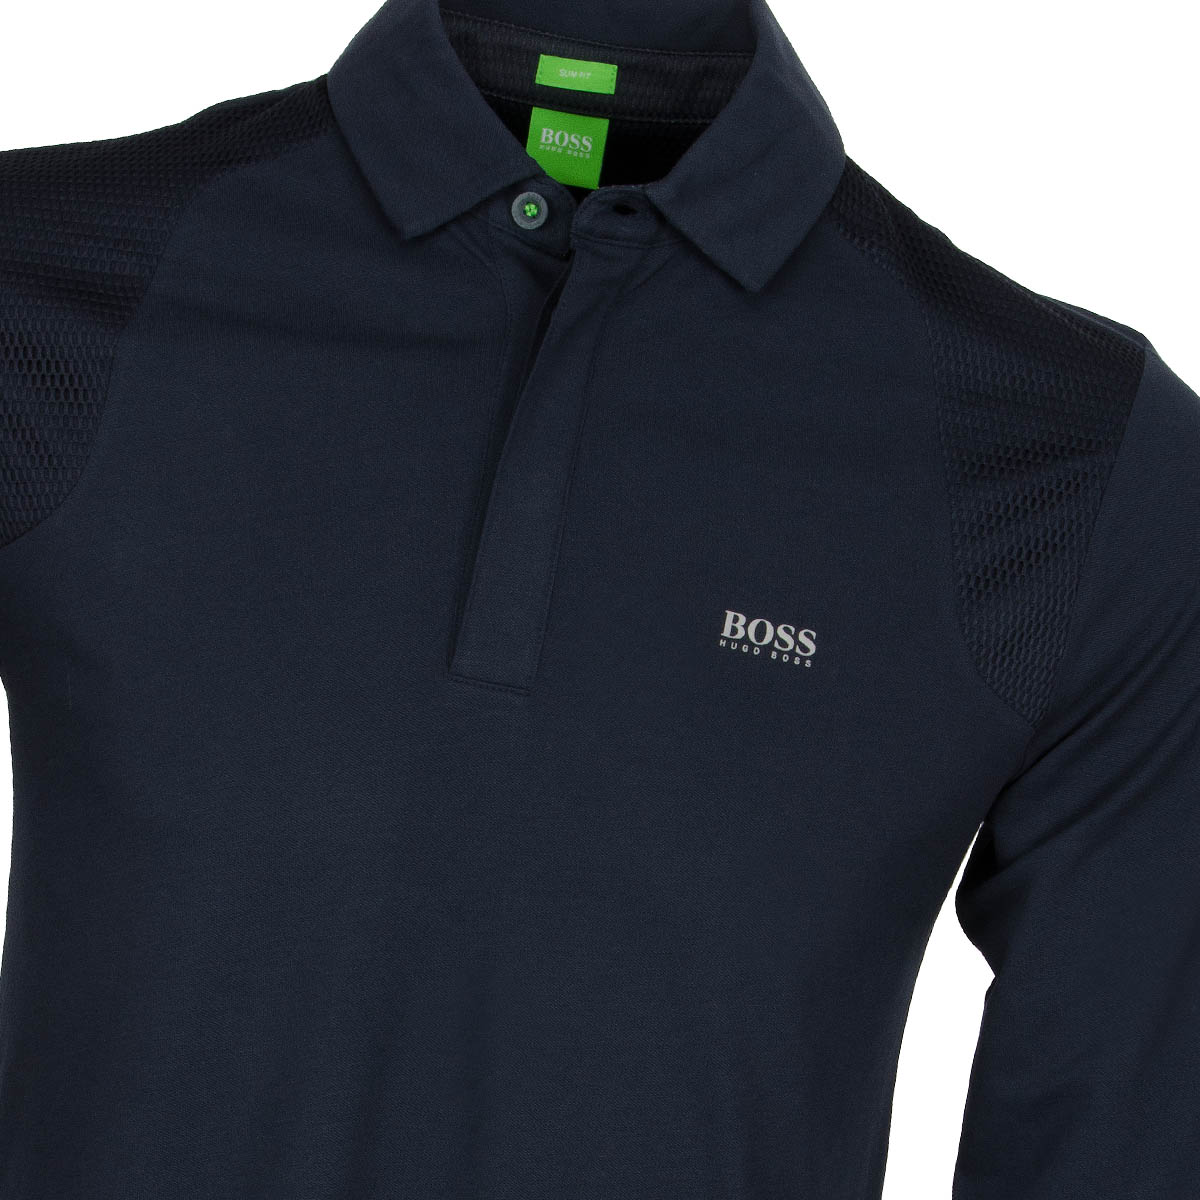 long sleeve hugo boss polo shirt. Black Bedroom Furniture Sets. Home Design Ideas